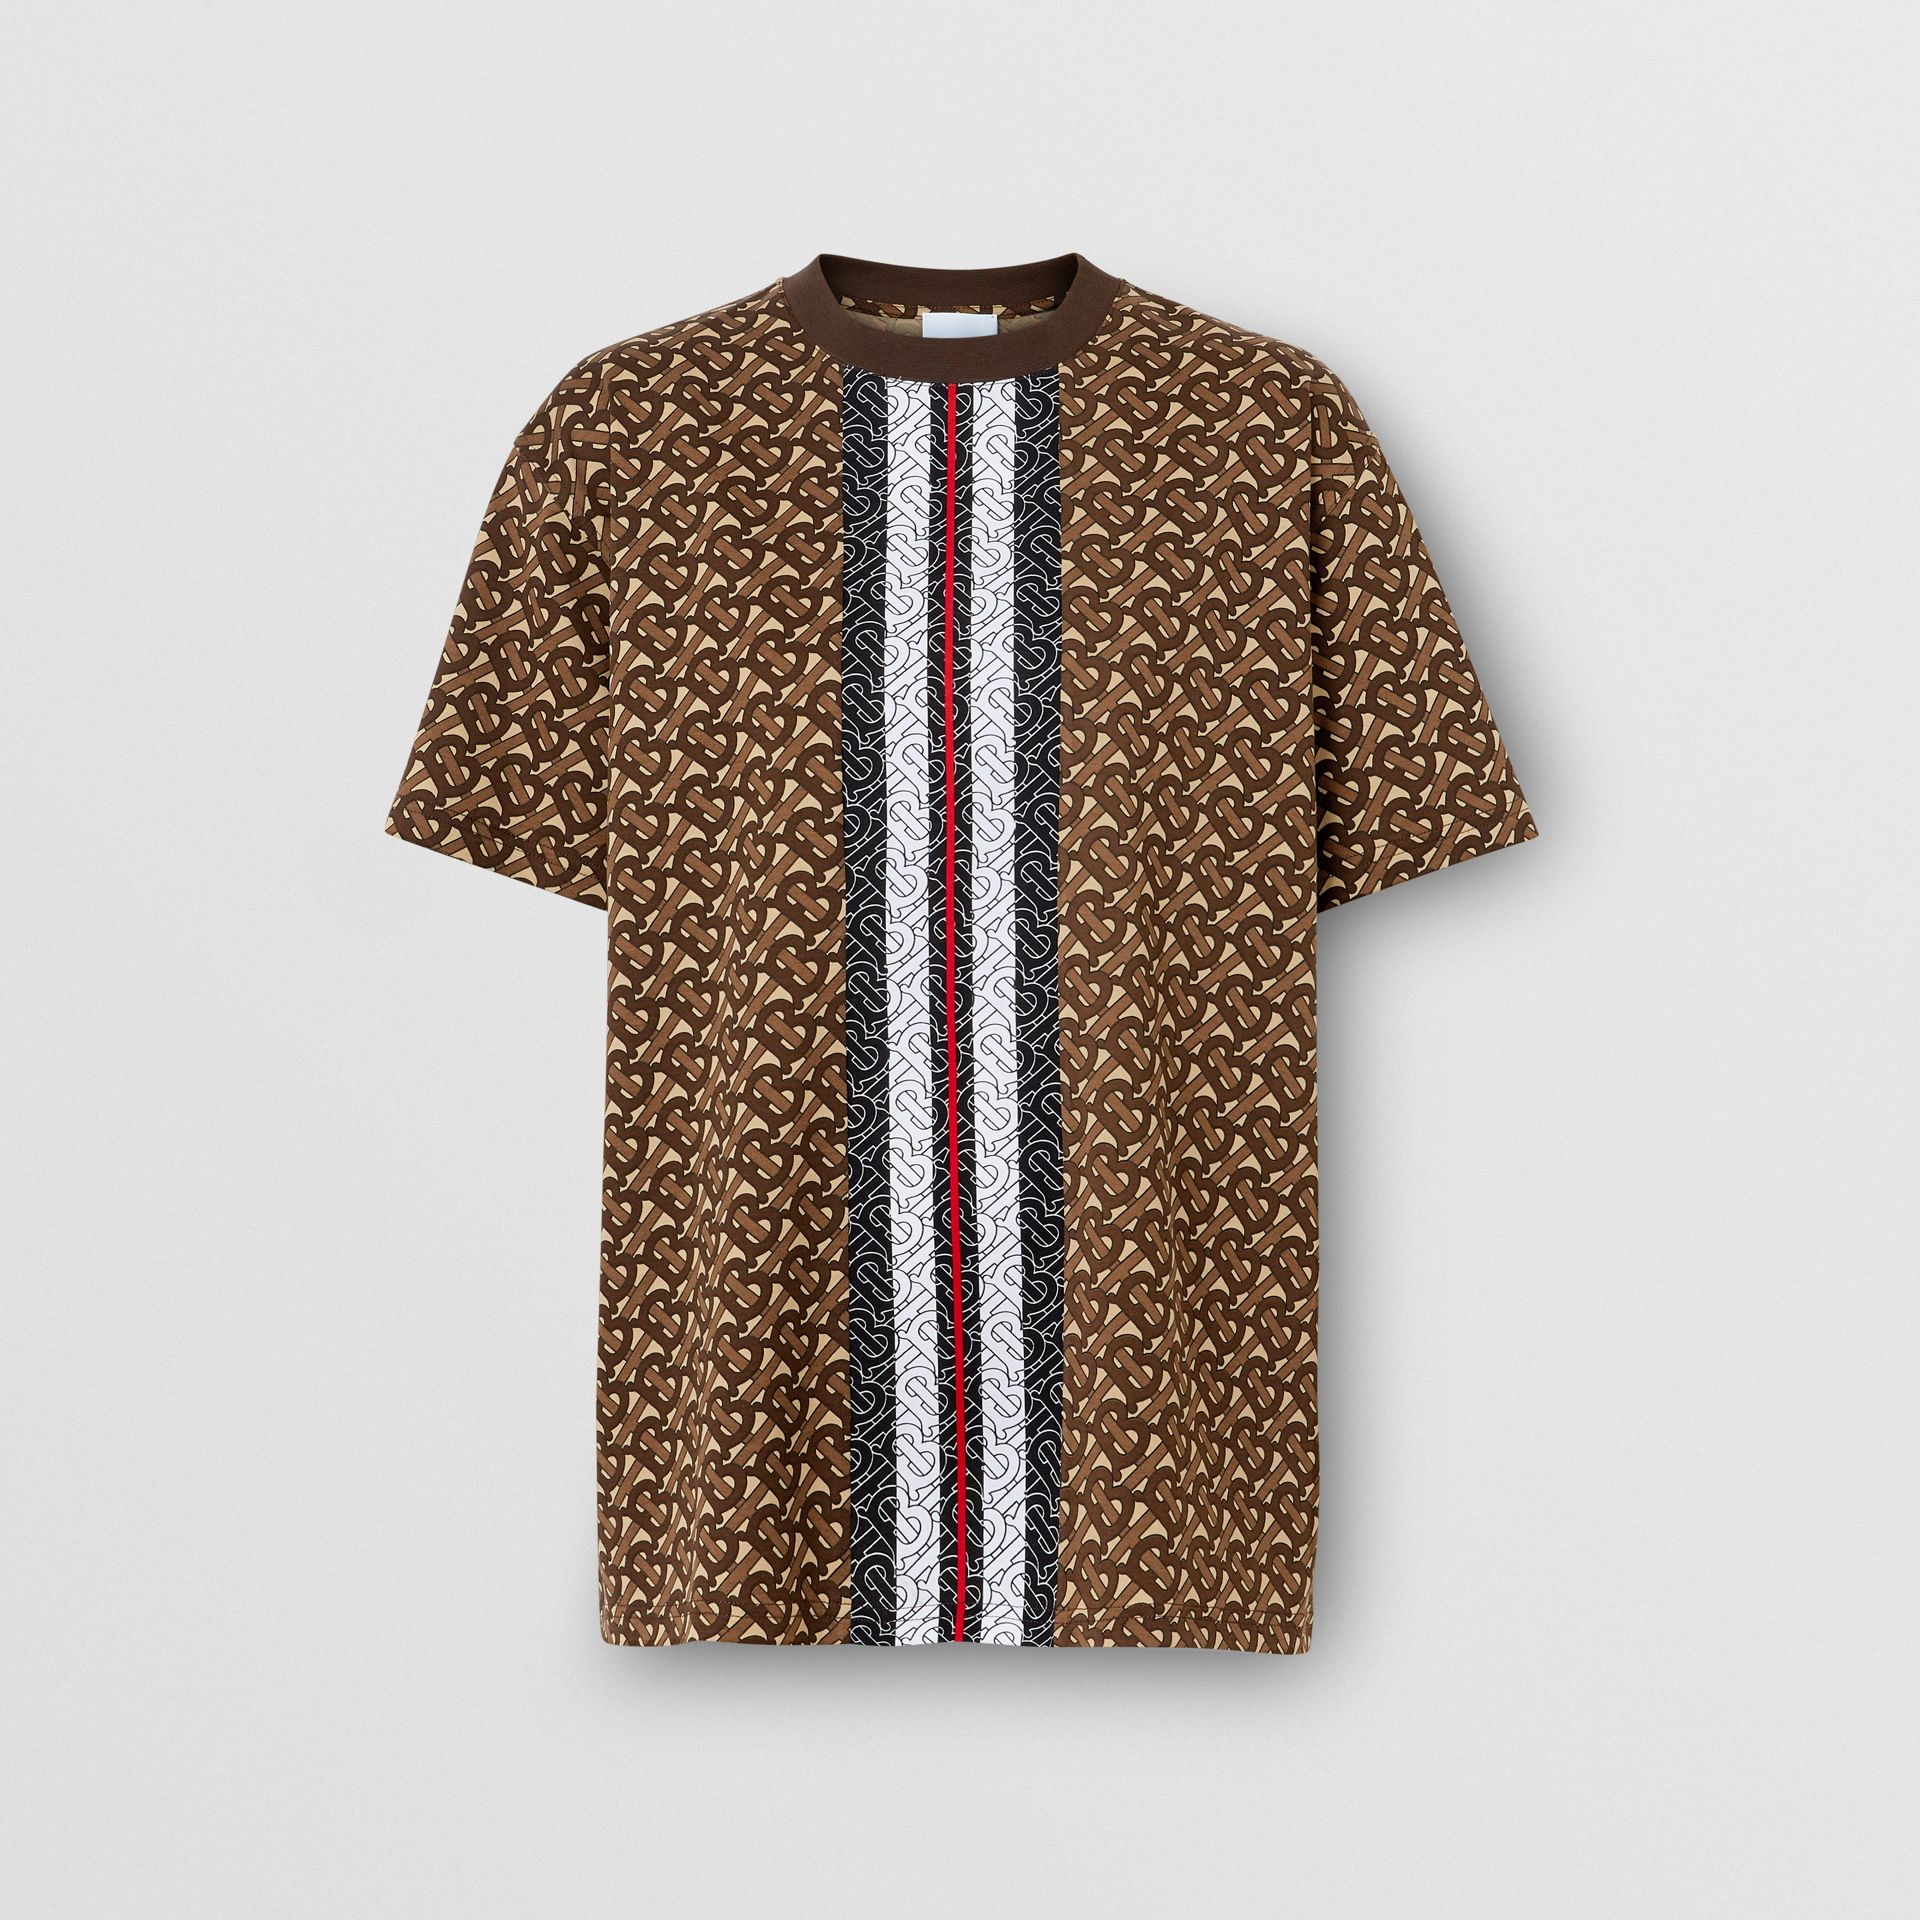 Monogram Stripe Print Cotton Oversized T-shirt in Bridle Brown - Women | Burberry United Kingdom - gallery image 3